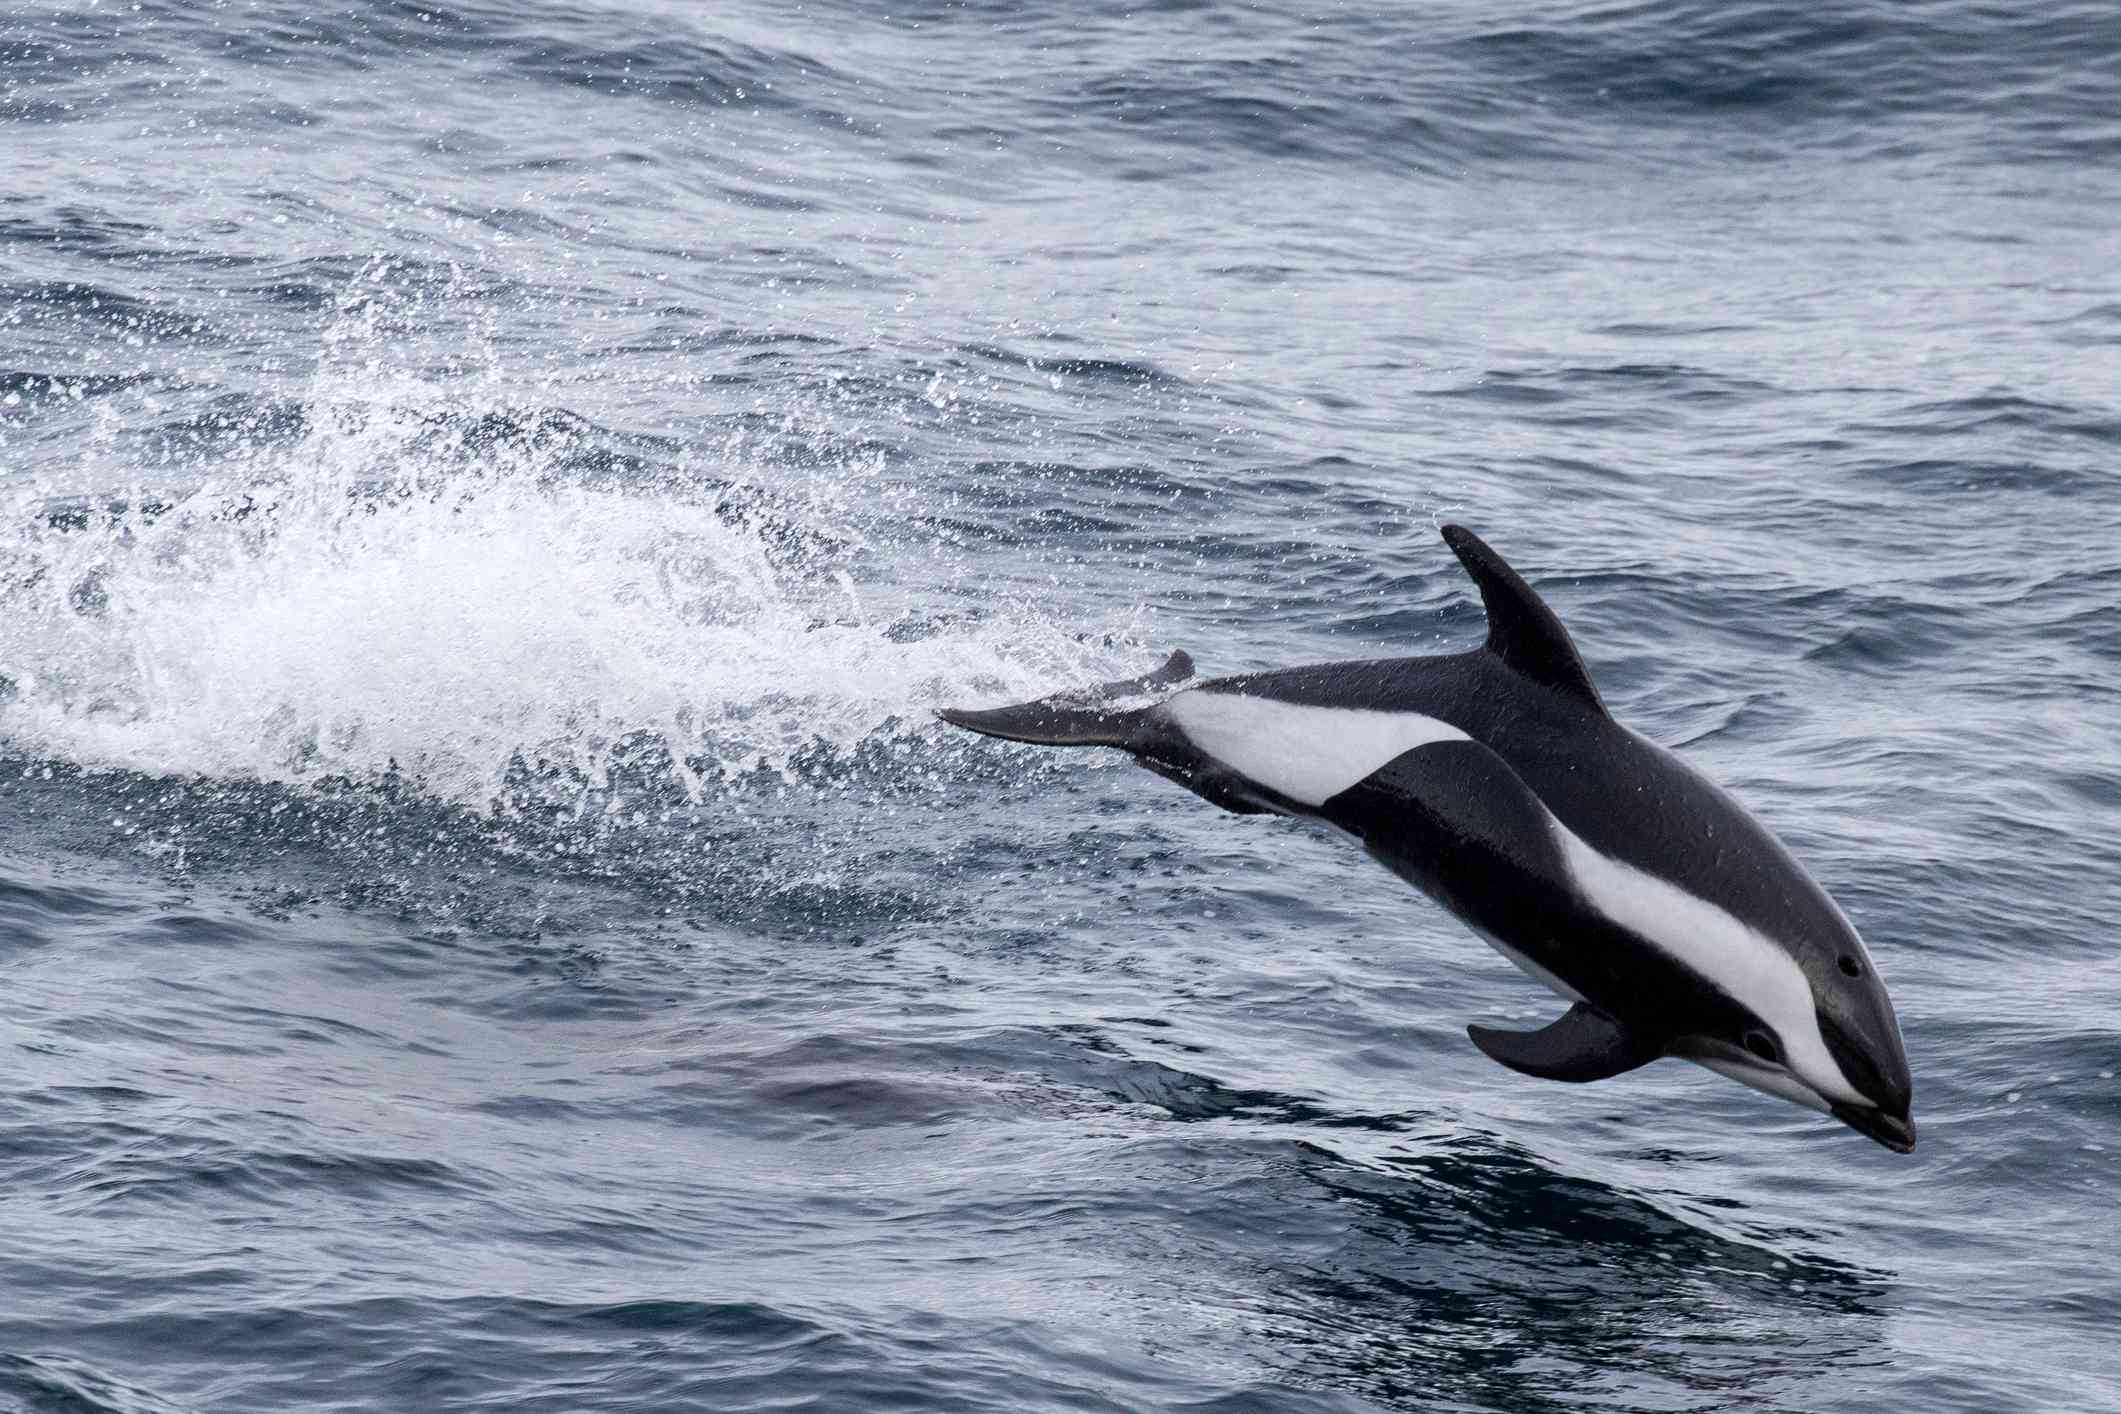 An hourglass dolphin jumping above the ocean's surface.